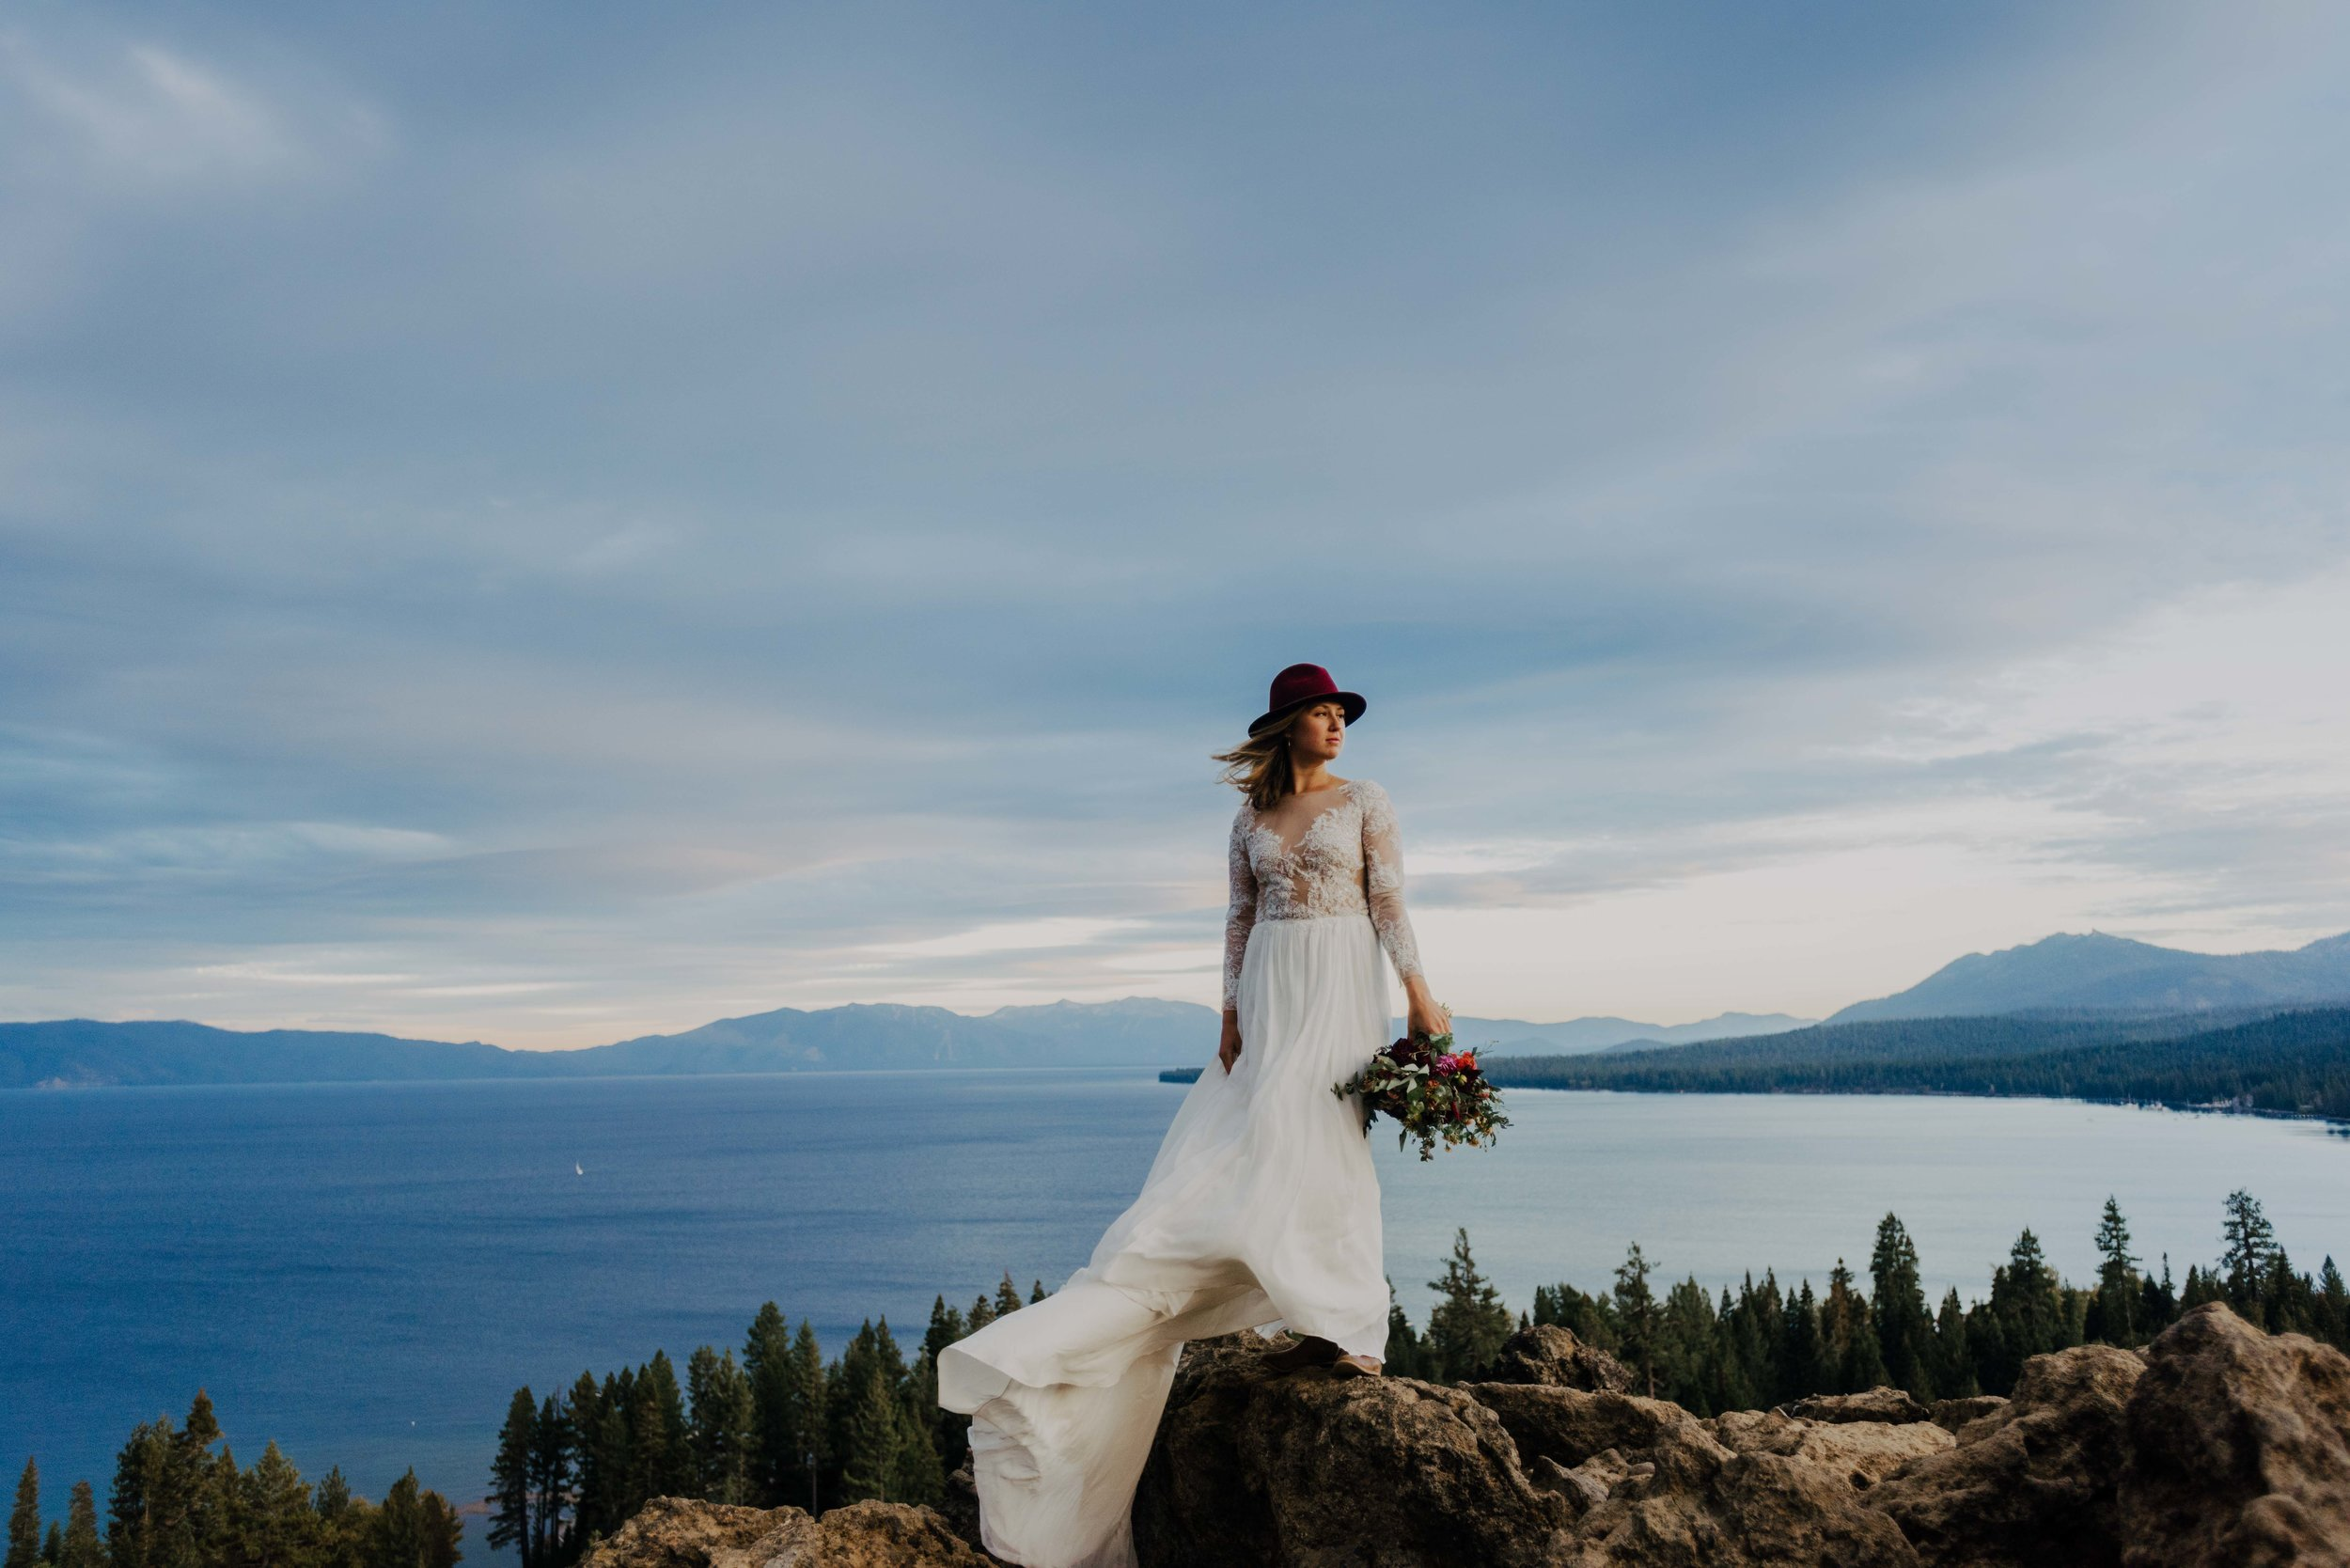 Elopement Wedding Dress rental